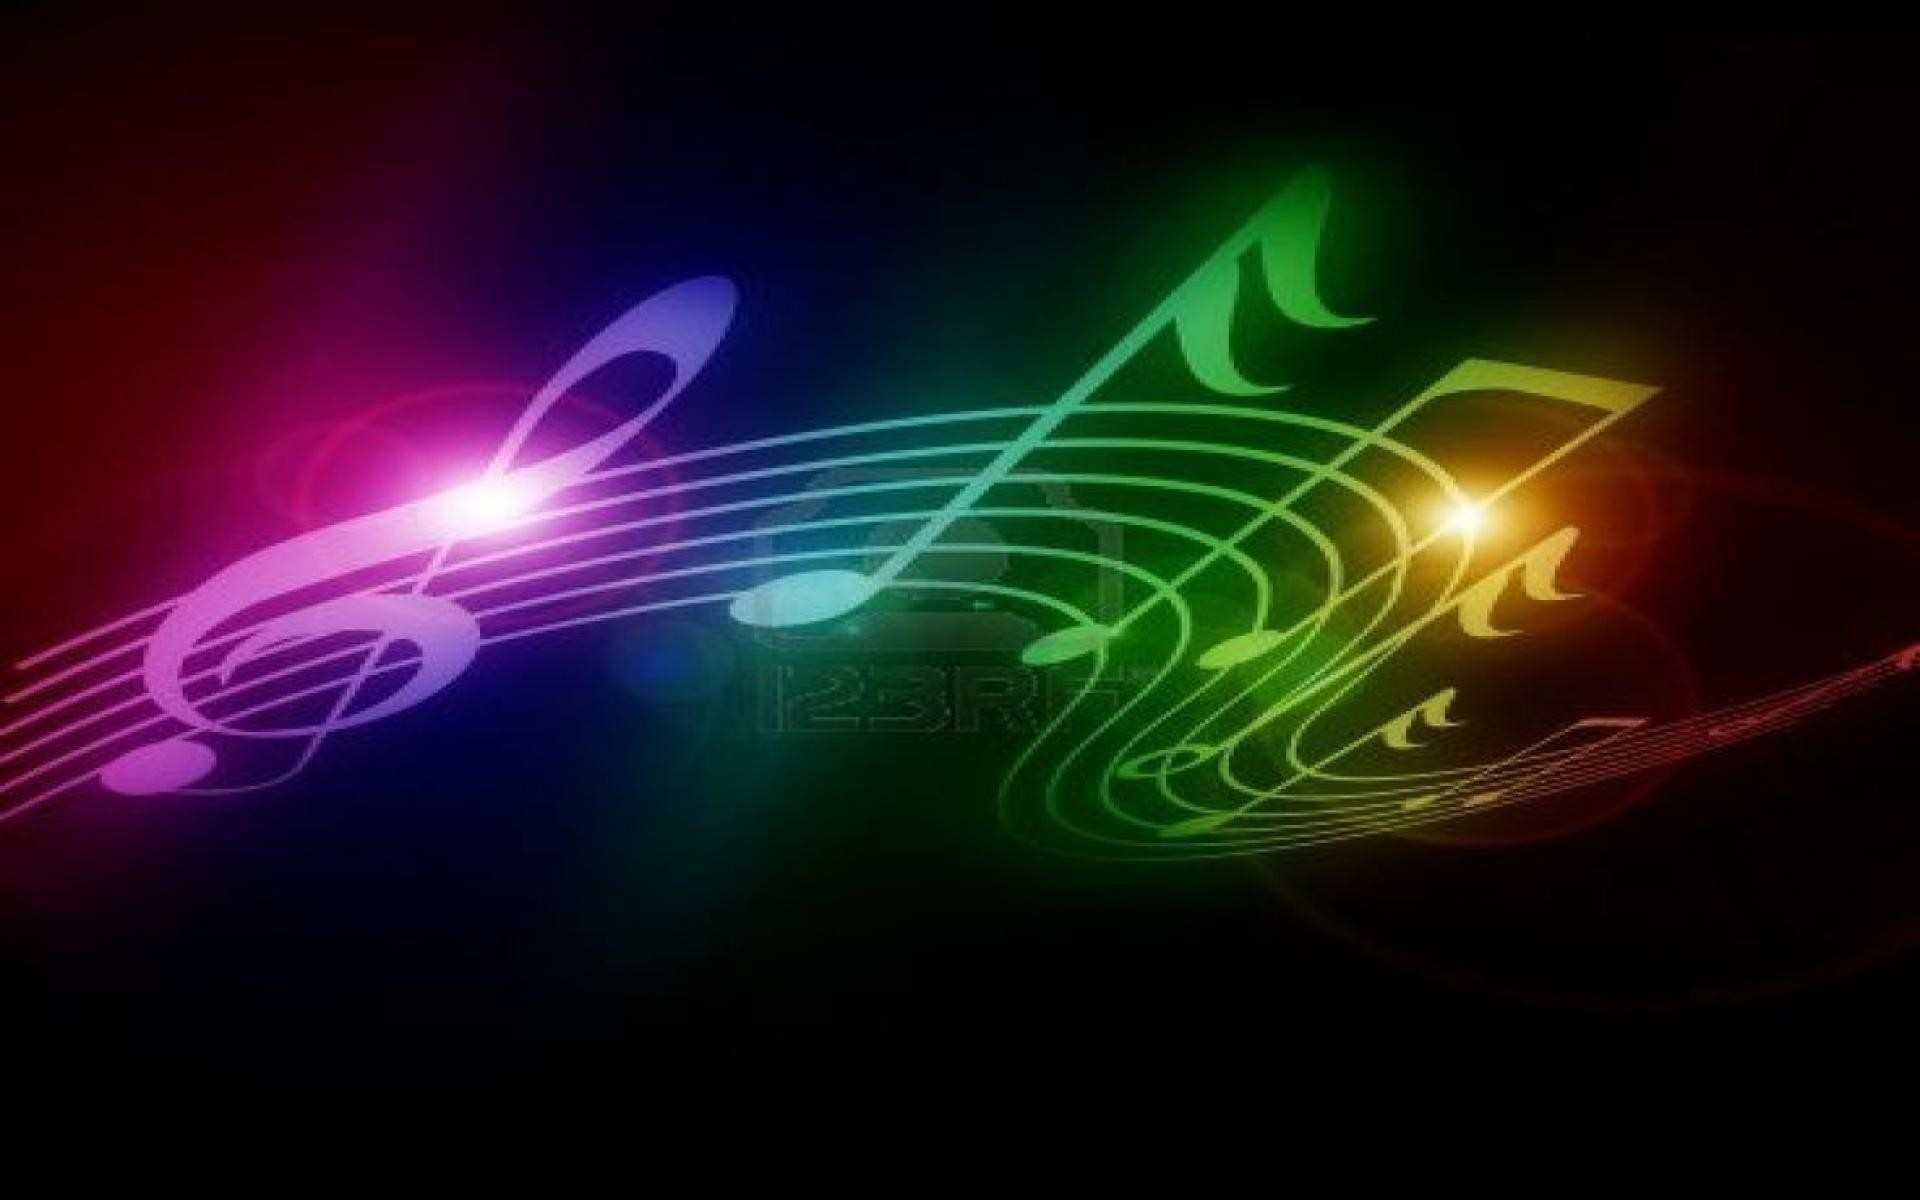 1920x1200 Neon Music Notes Wallpaper ( px)